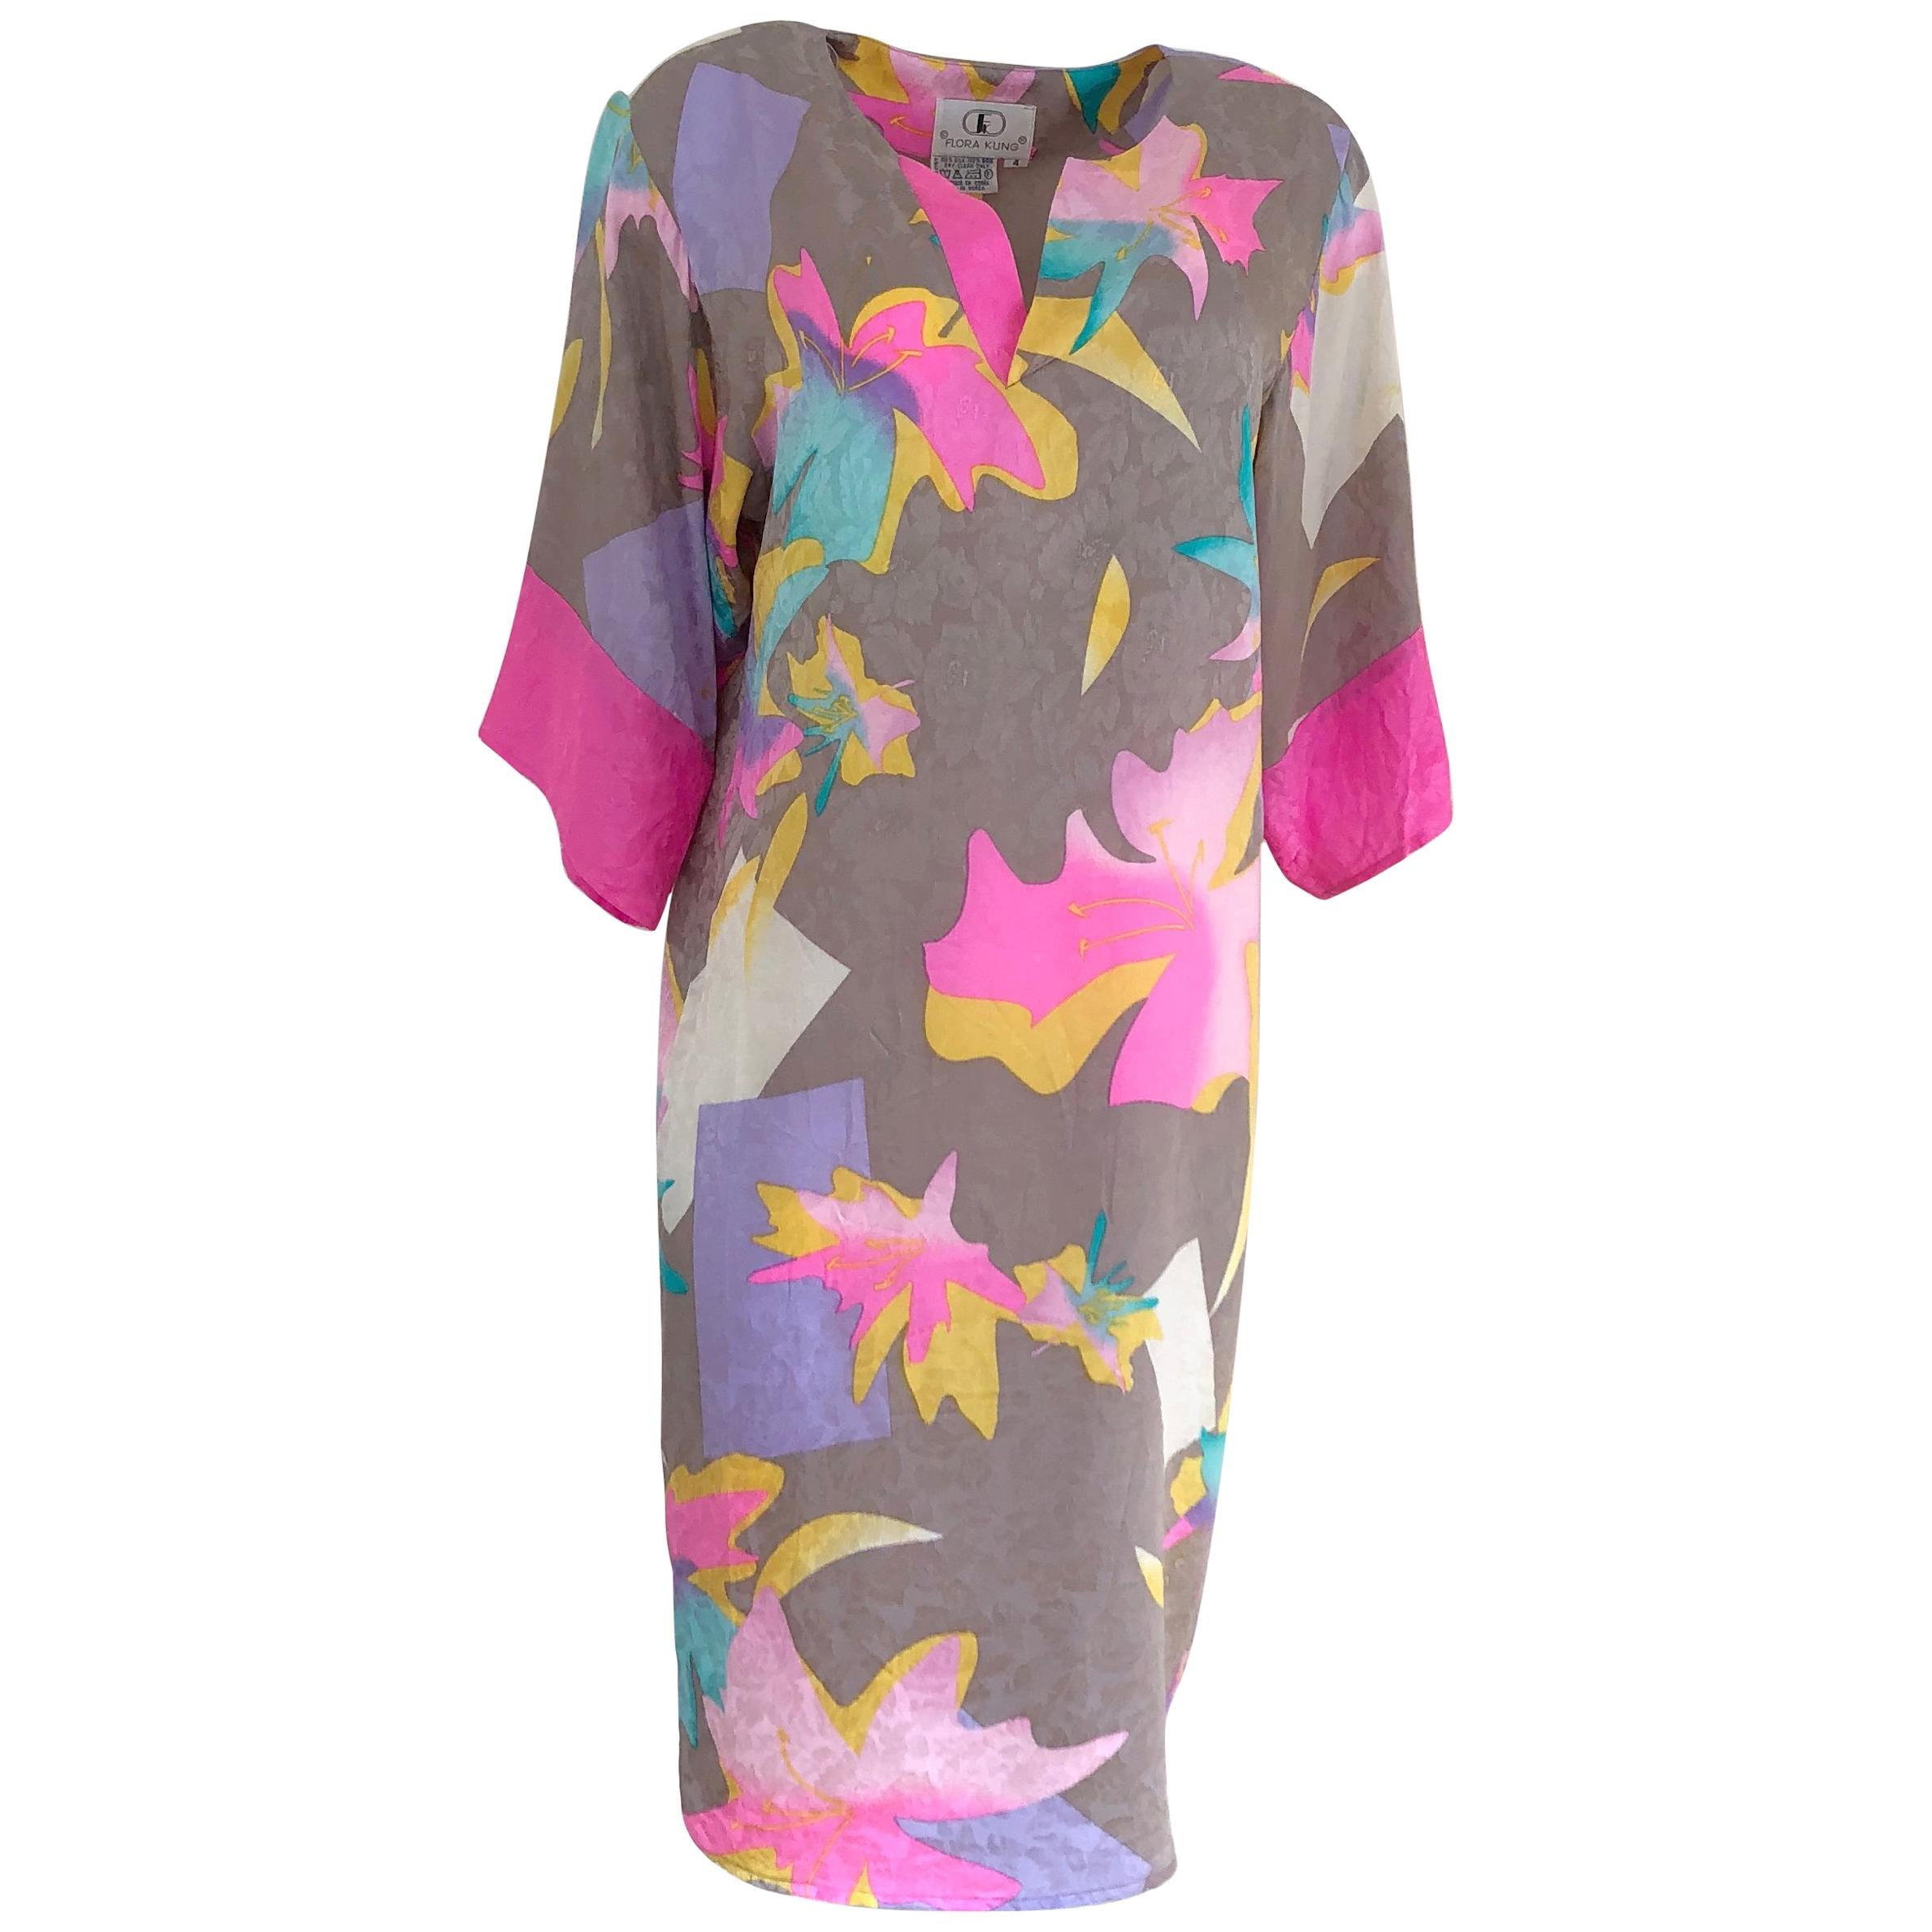 New silk kimono dress by FLORA KUNG in pearl gray with printed neon floral